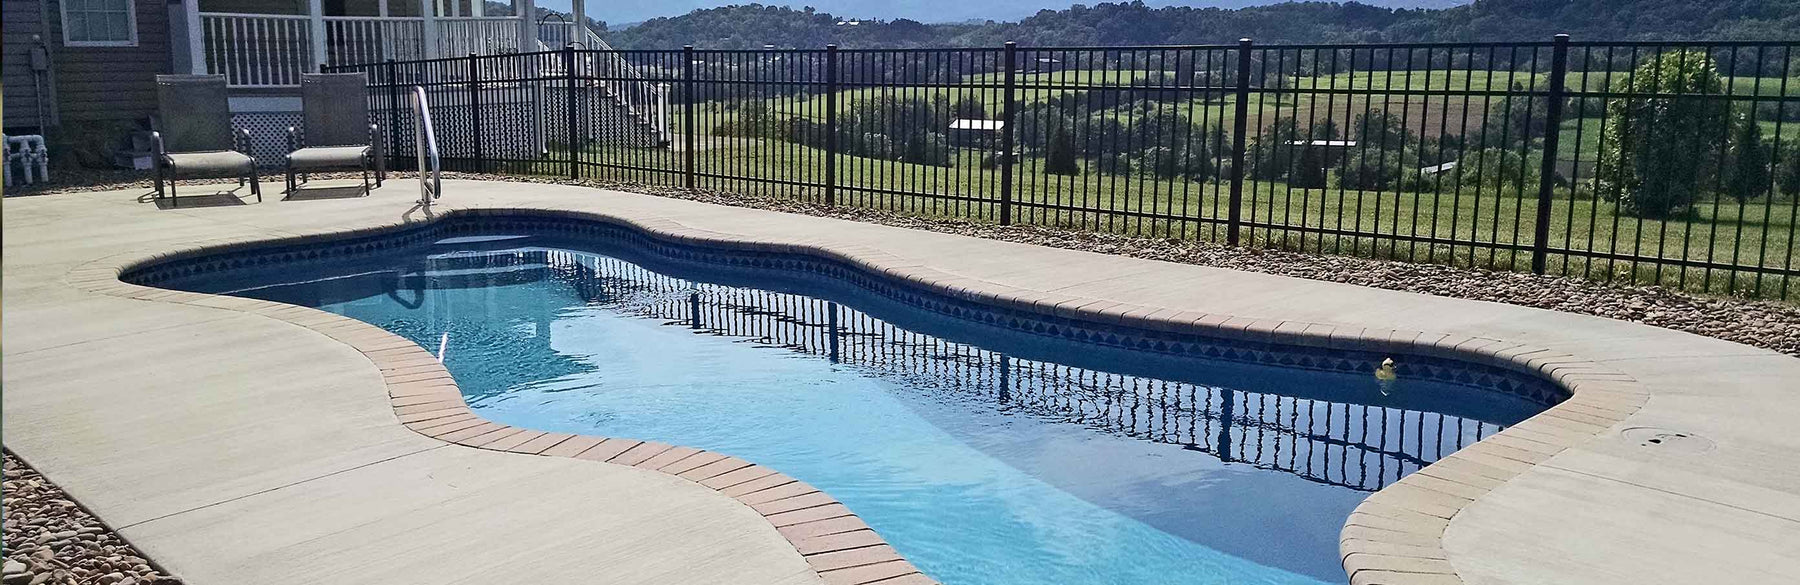 4 Simple Steps: How To Check Your Pool For Leaks